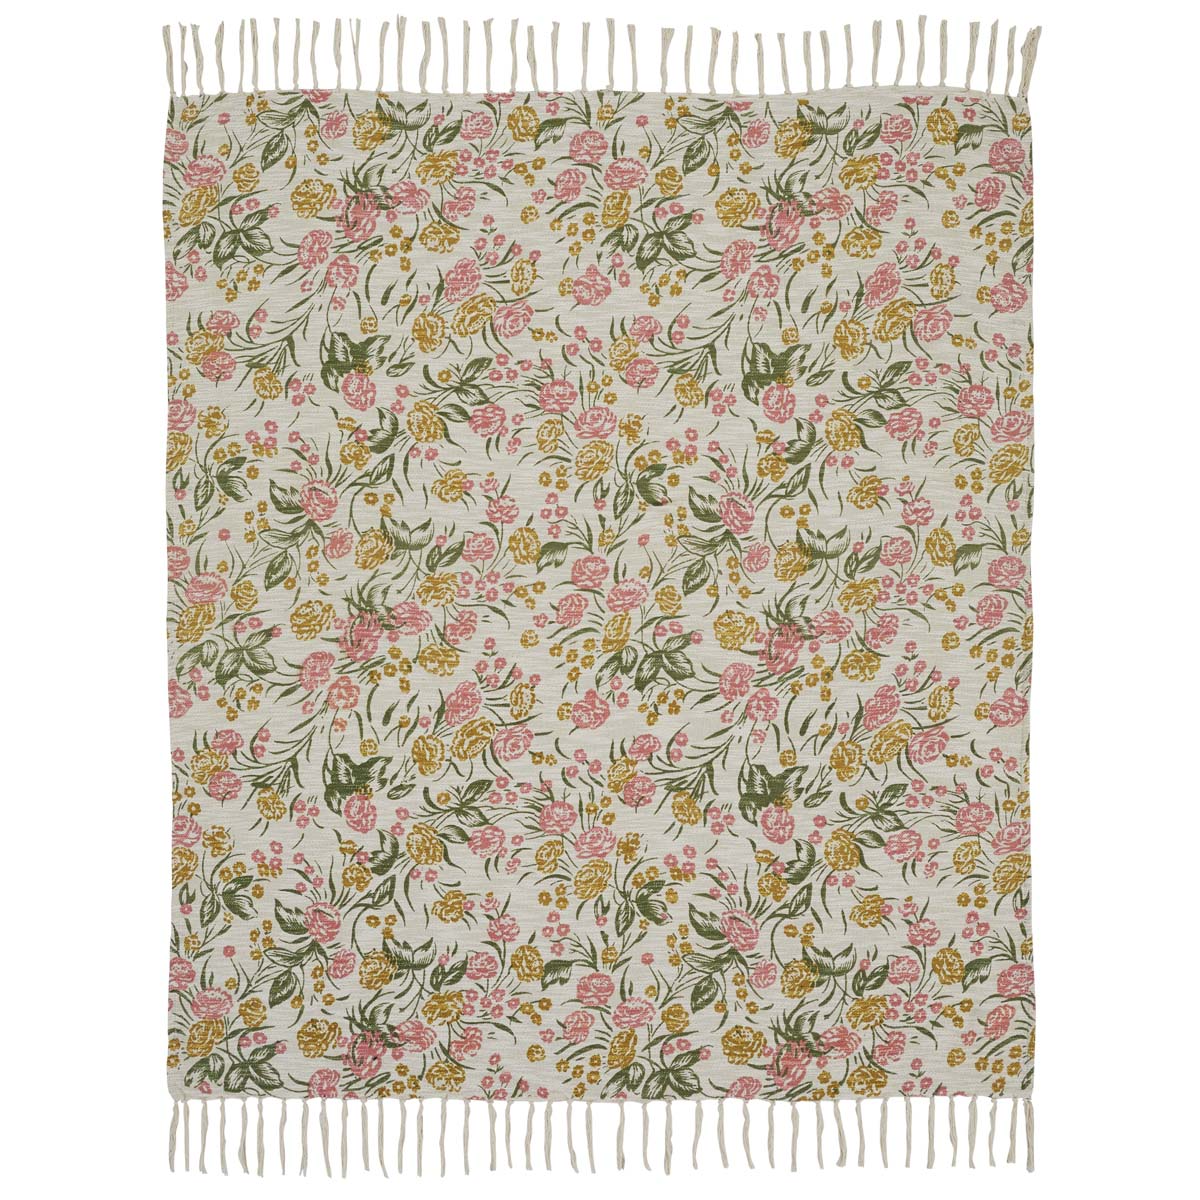 Madeline Printed Woven Throw 60x50